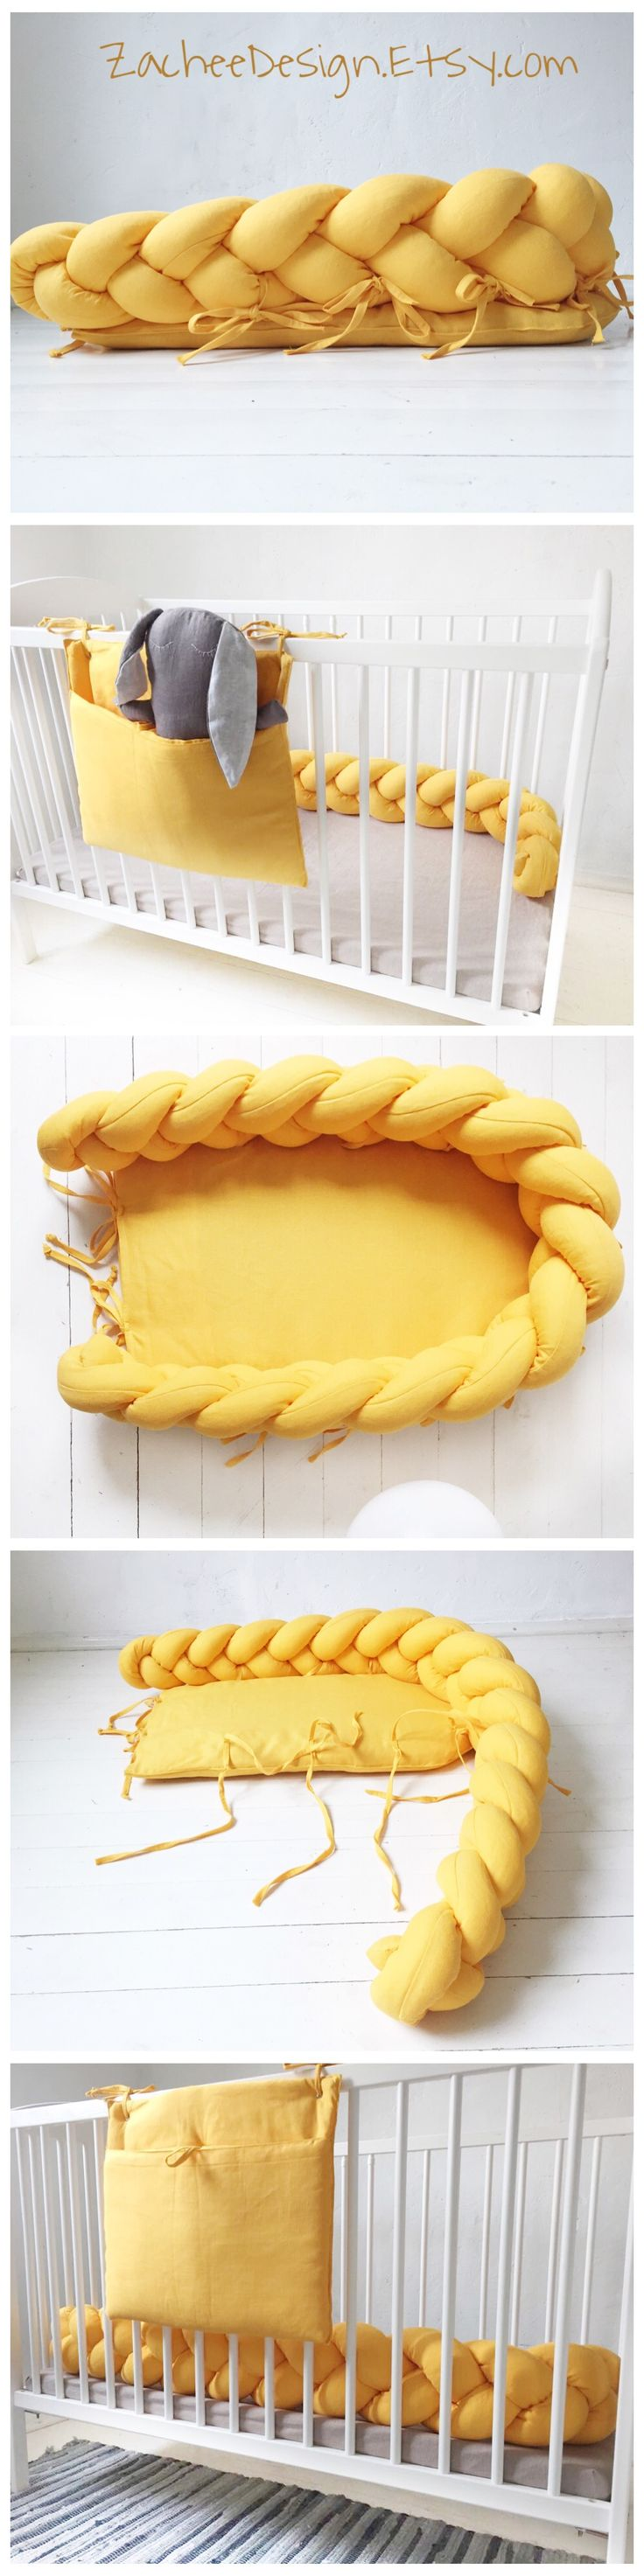 Baby nest 2in1. Made of 100% linen. Transforms into braided crib bumper. Awesome idea. Snuggle your baby into baby nest bed and afterwards put into crib to avoid bumps. But hey, perfect to be used by adults as a decor :) Soft and snuggly.